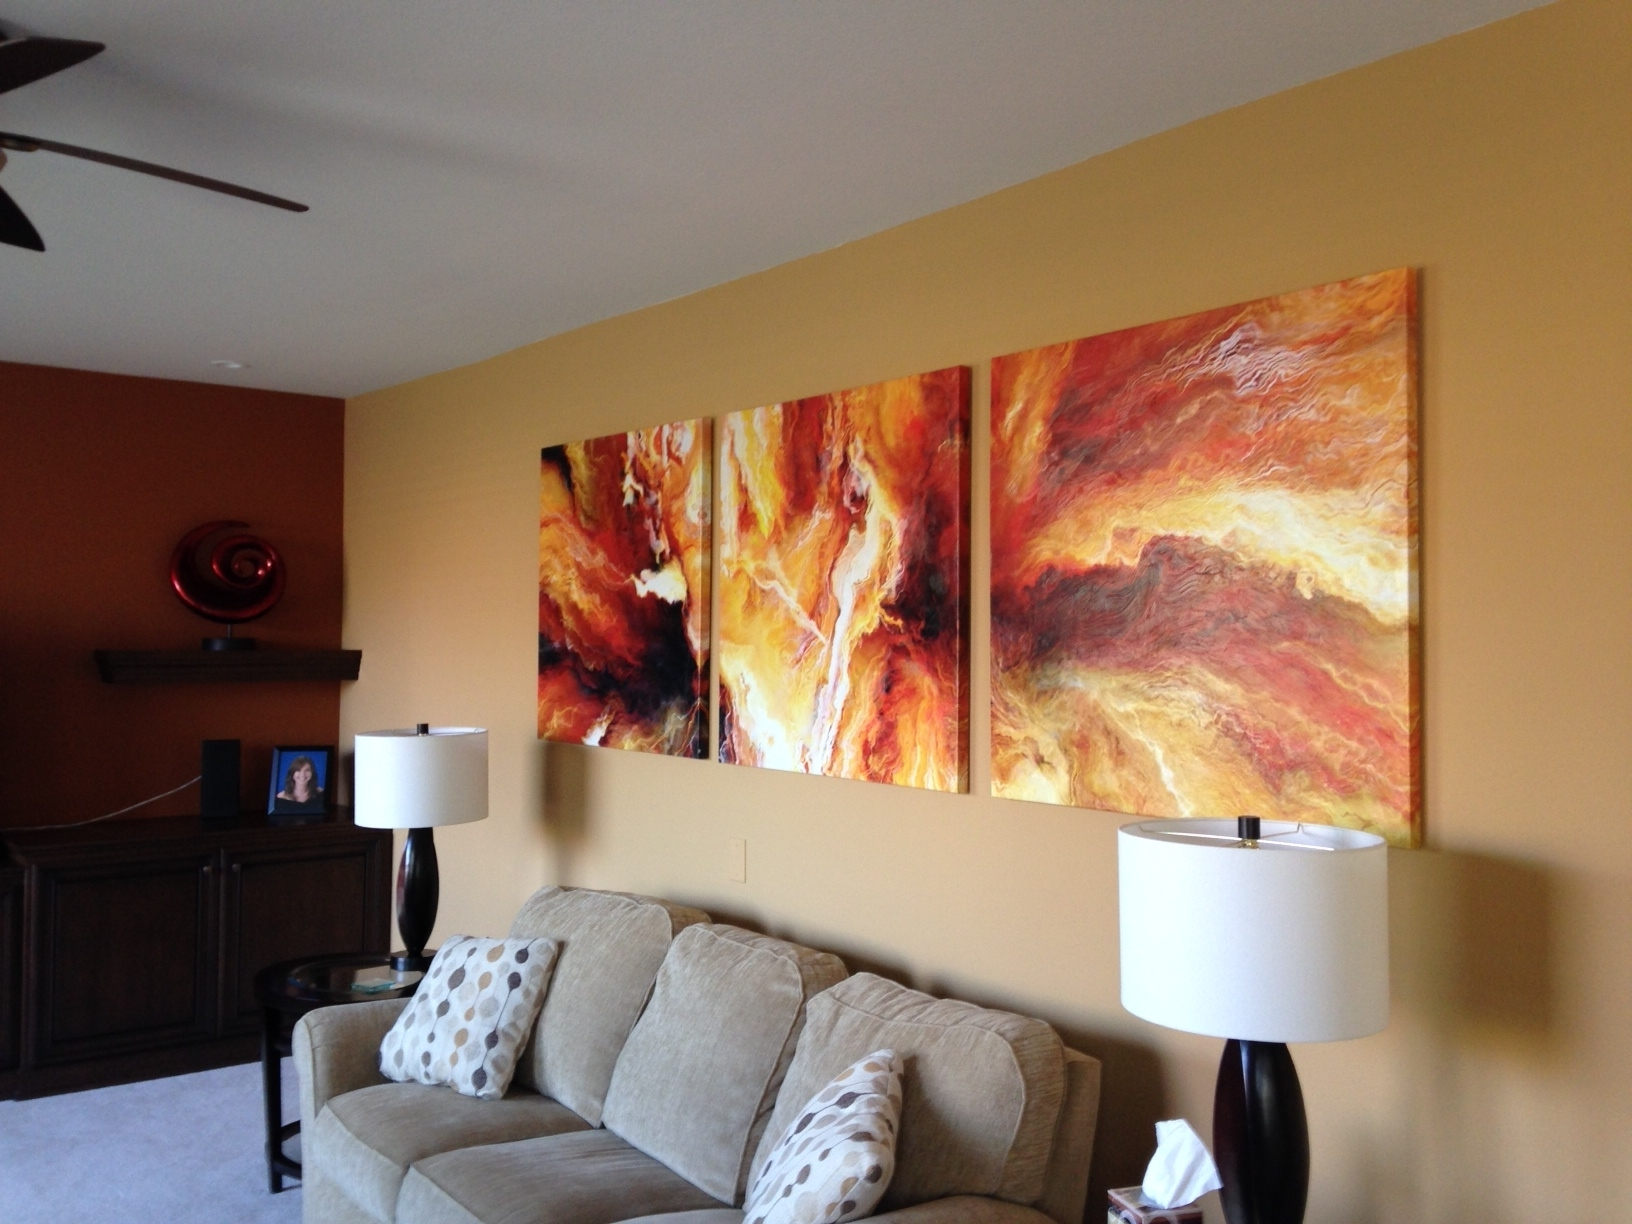 "Triptych Art For Sale Regarding Trendy Passion"" Abstract Painting For Sale – Large Triptych 3 Panel (View 11 of 15)"